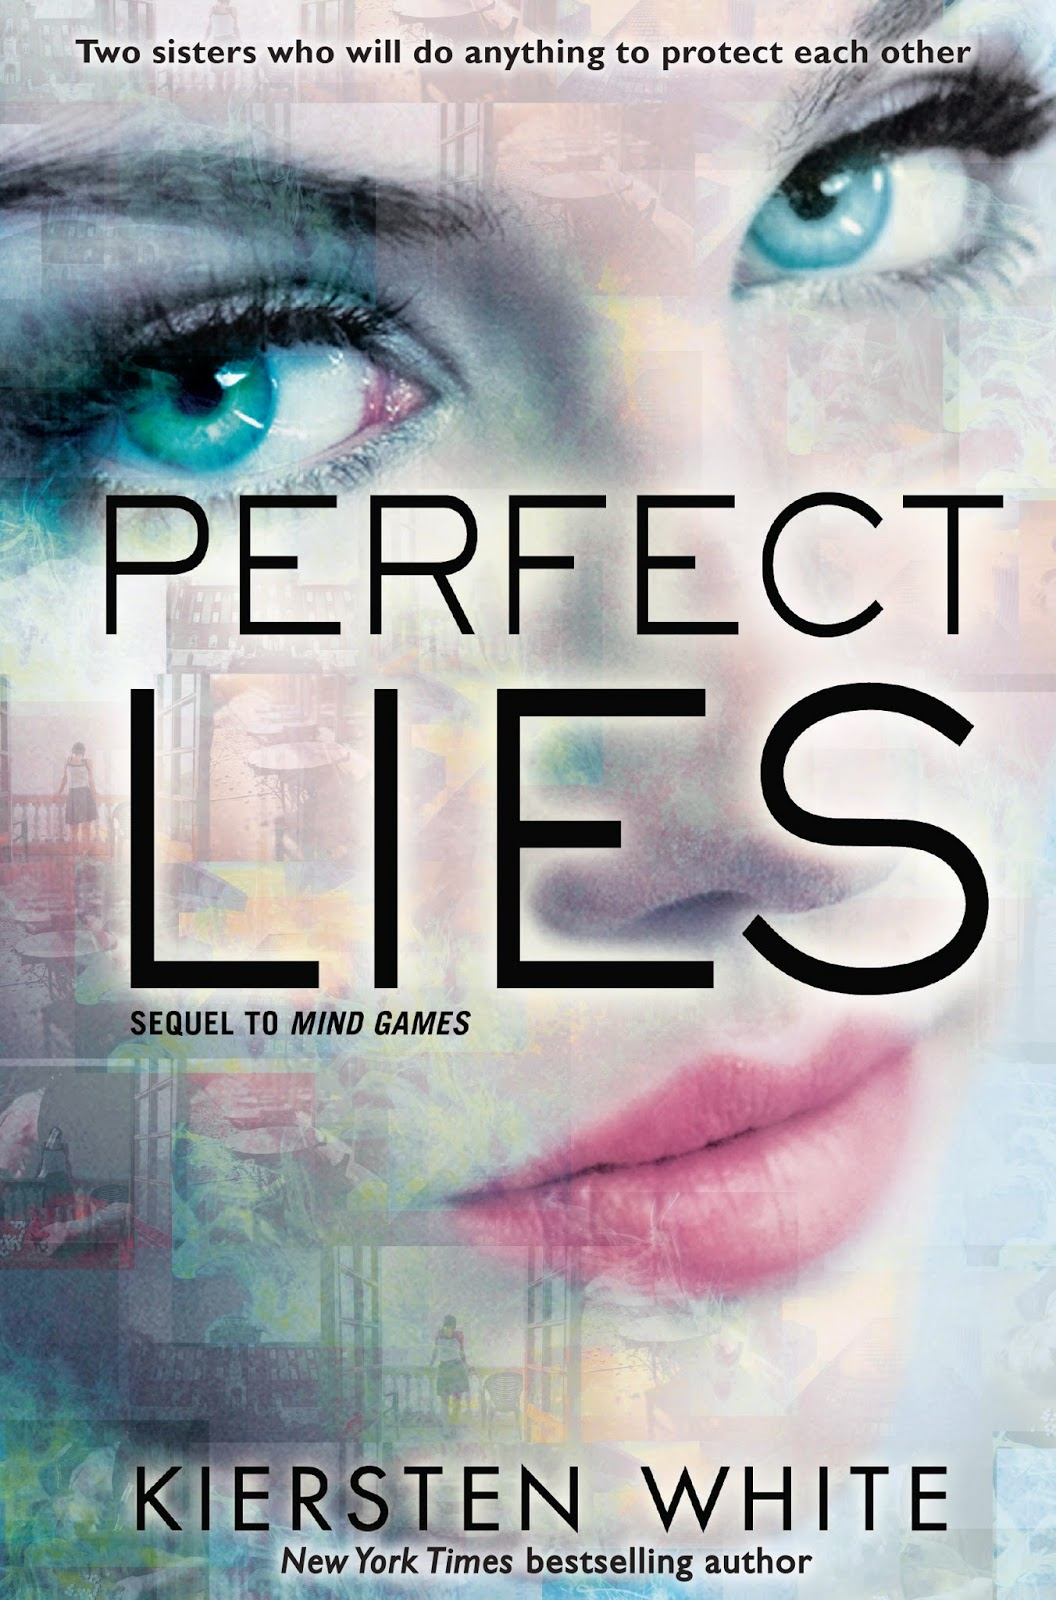 http://harperteen.com/books/Perfect-Lies-Kiersten-White/?isbn=9780062135841